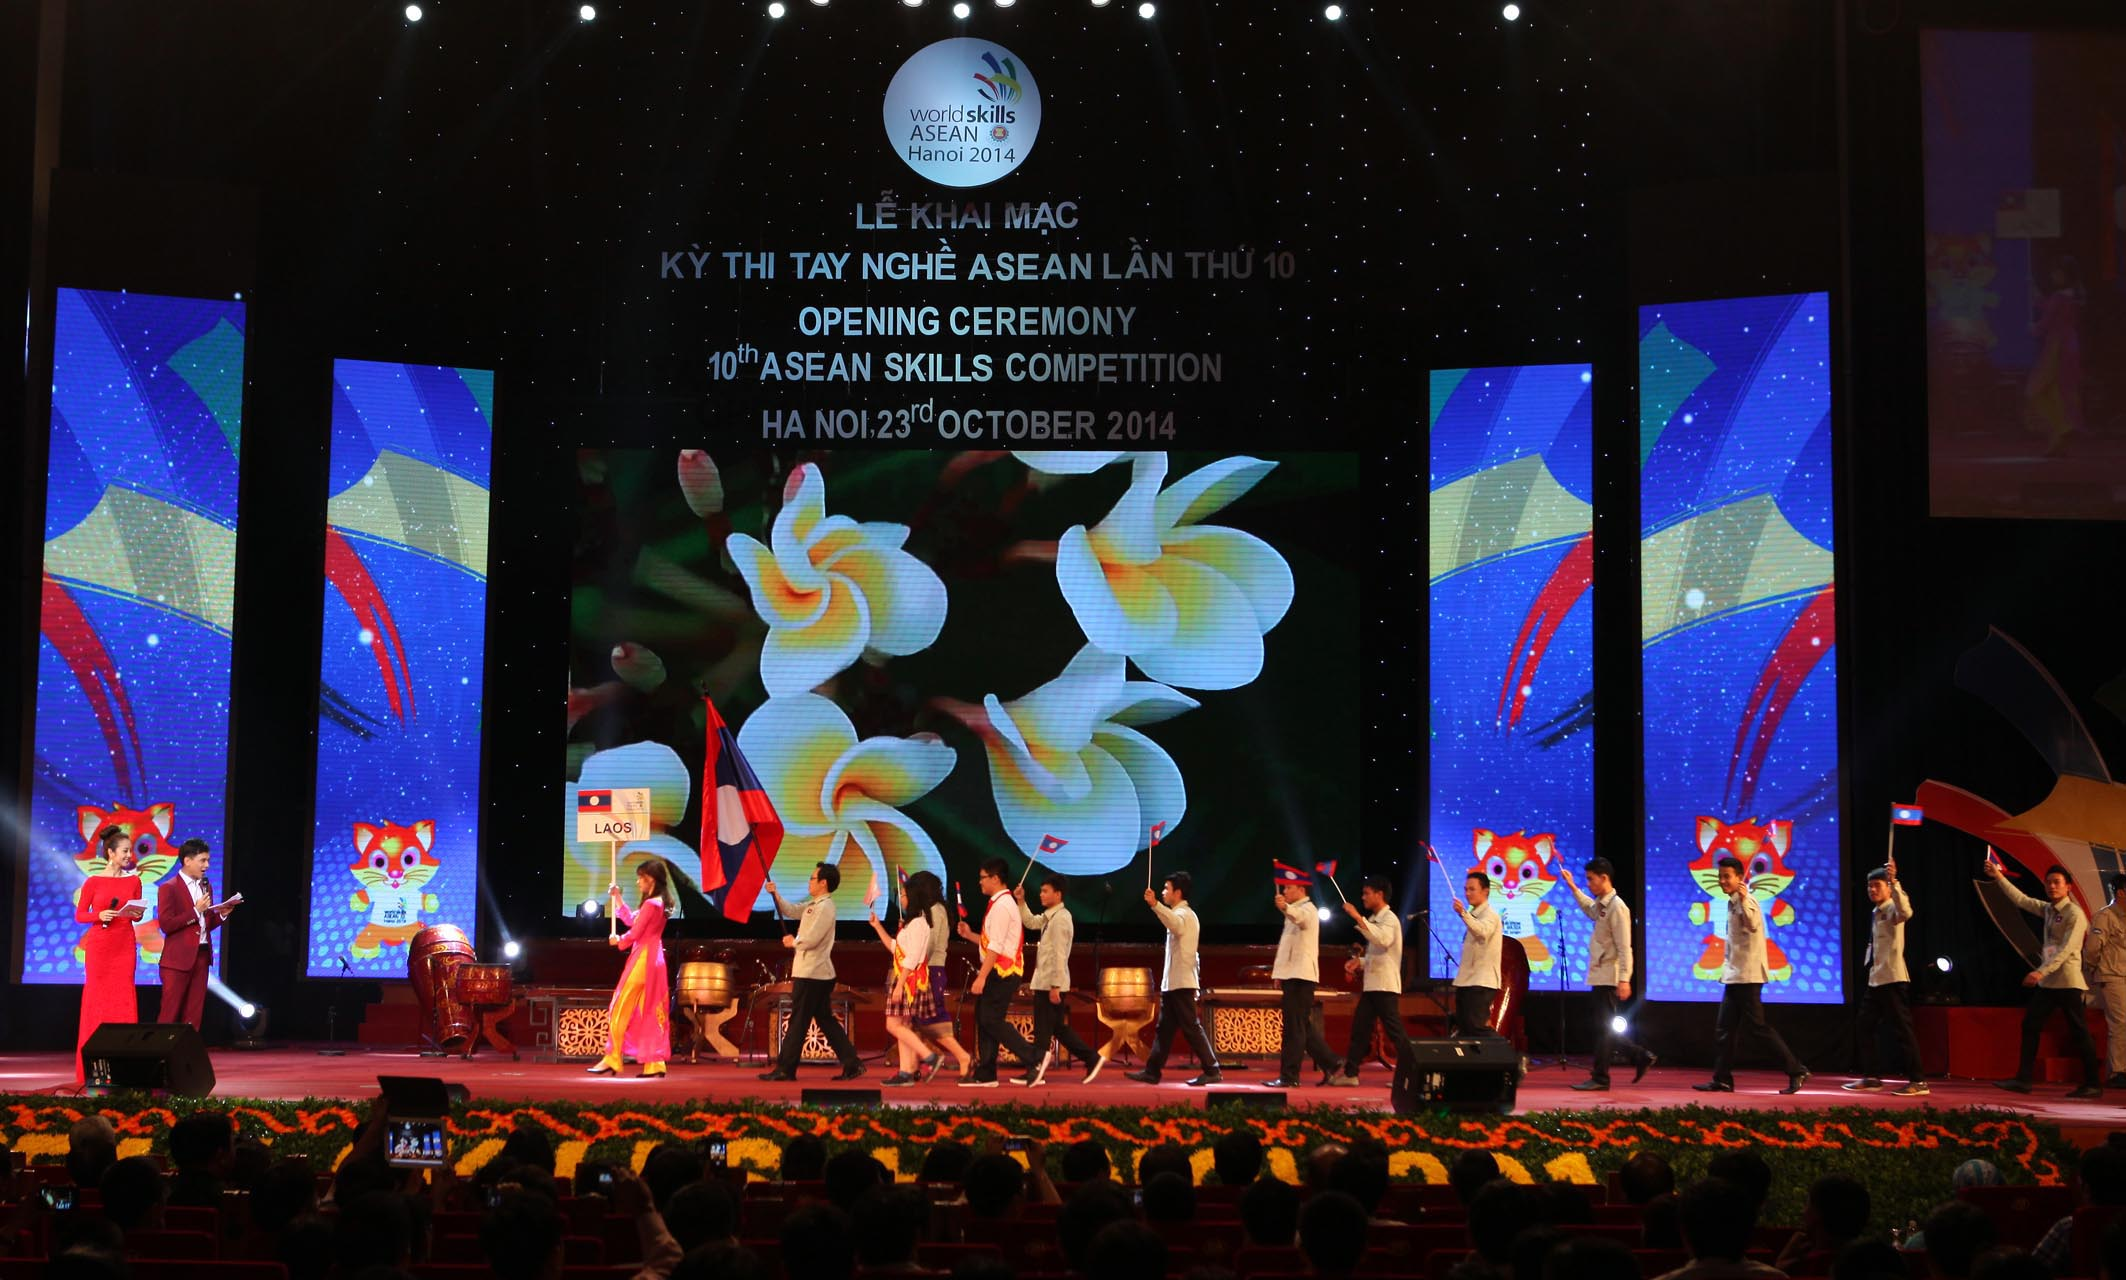 Laos' delegation parades into stage